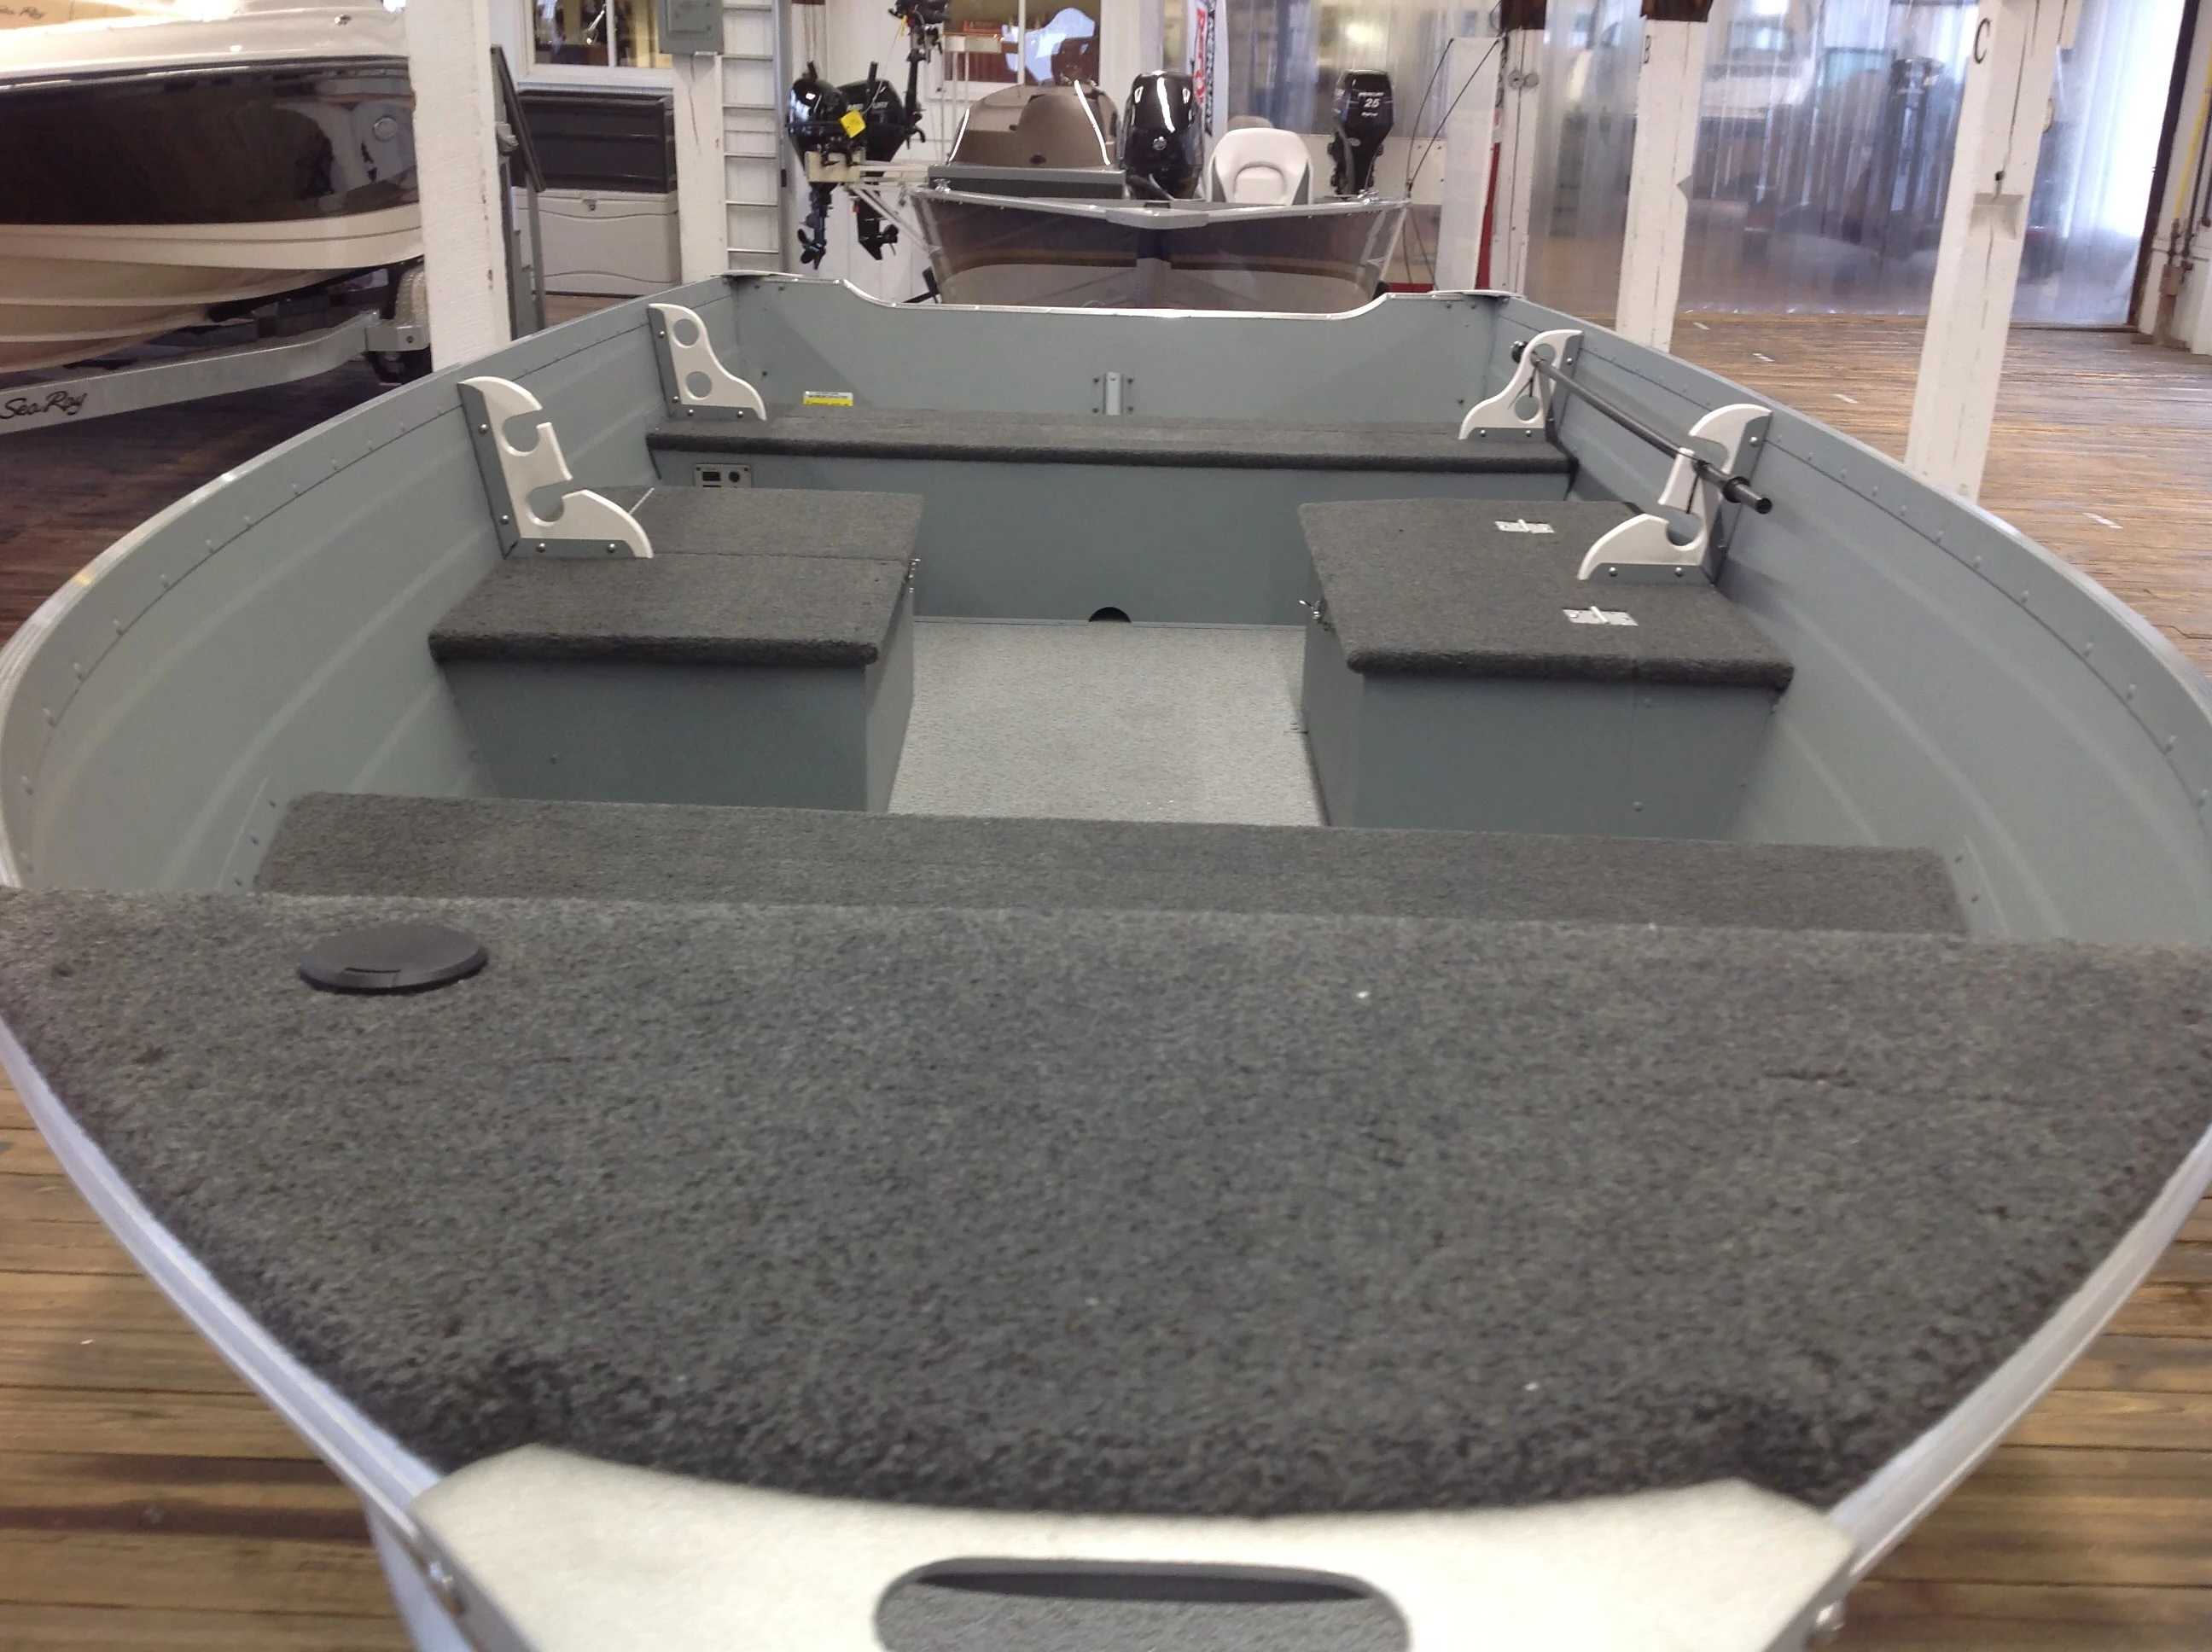 2021 Smoker Craft boat for sale, model of the boat is 14 Big Fish Tl Dlx & Image # 4 of 8